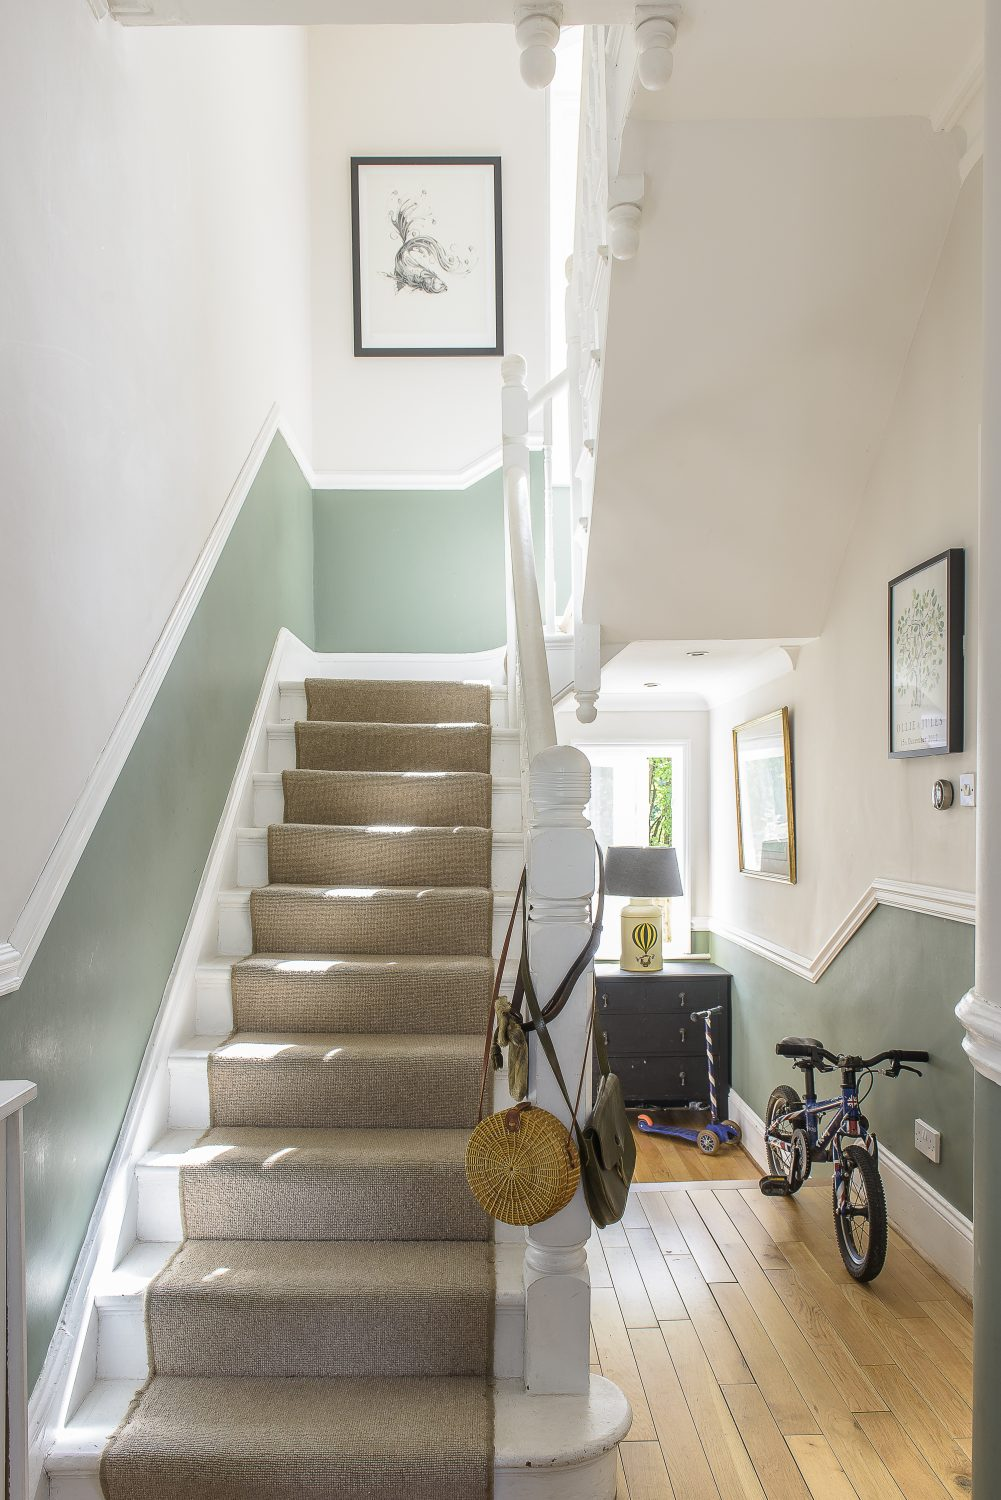 The couple reinstated the dado rail throughout the house